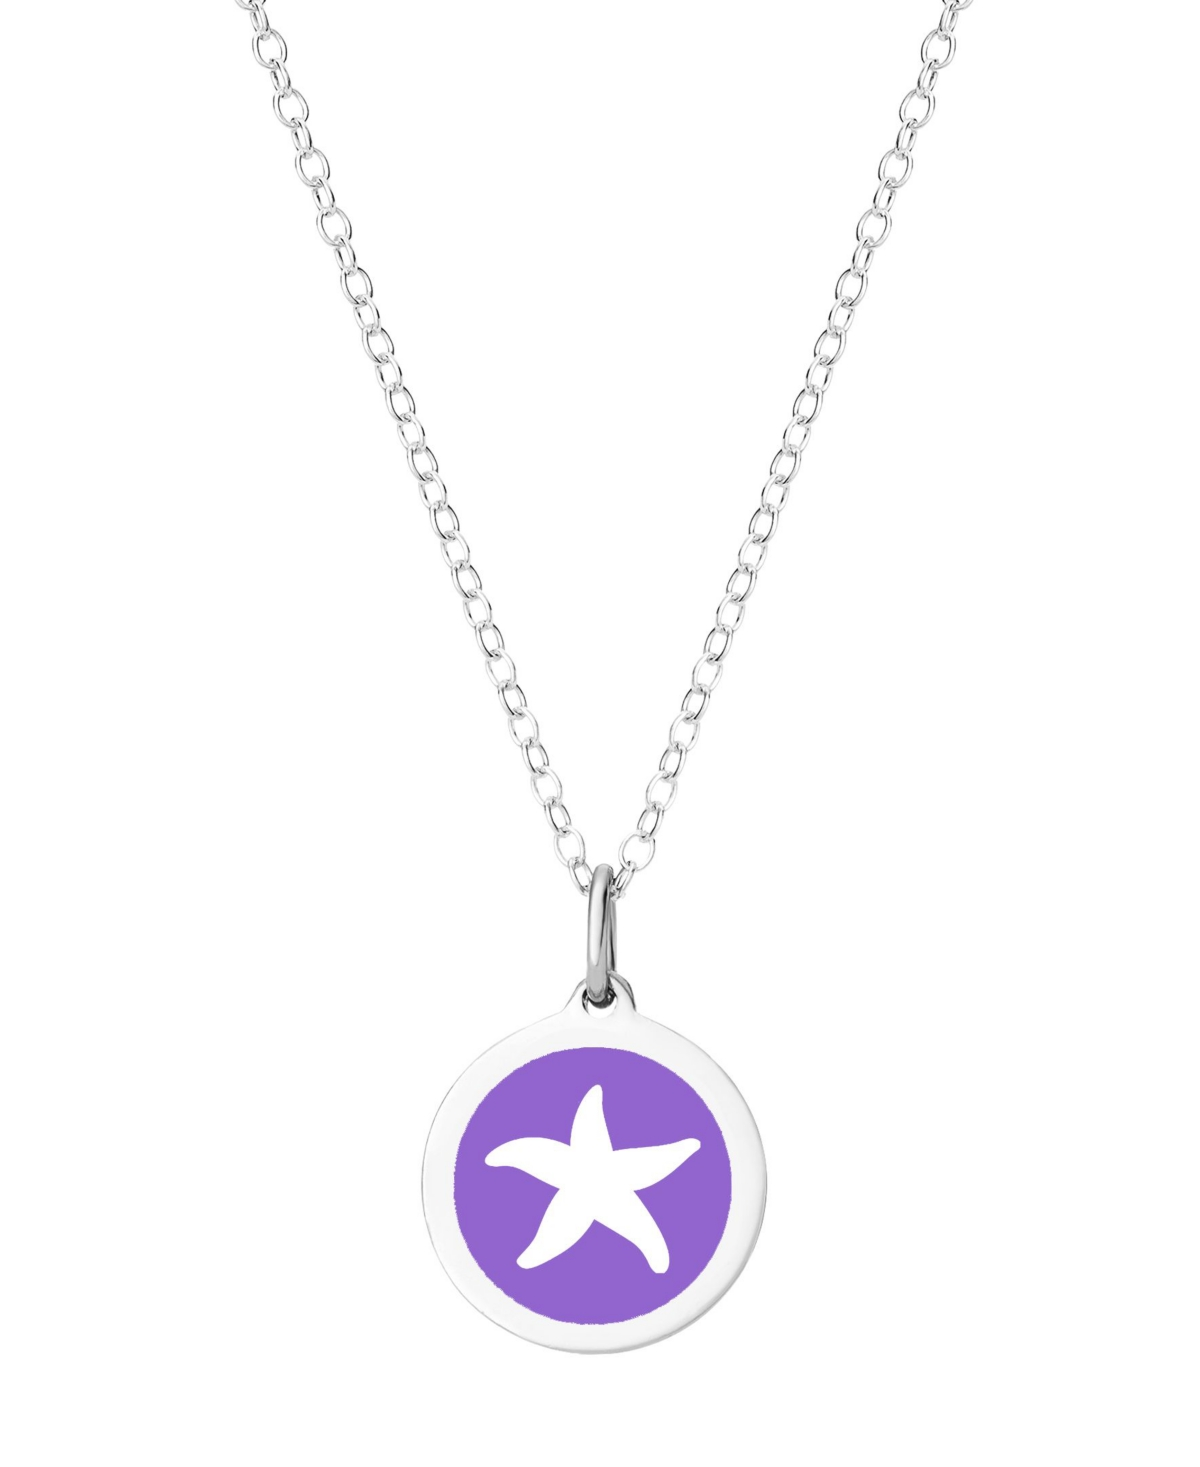 """Auburn Jewelry Mini Starfish Pendant Necklace in Sterling Silver and Enamel, 16"""" + 2"""" Extender"""